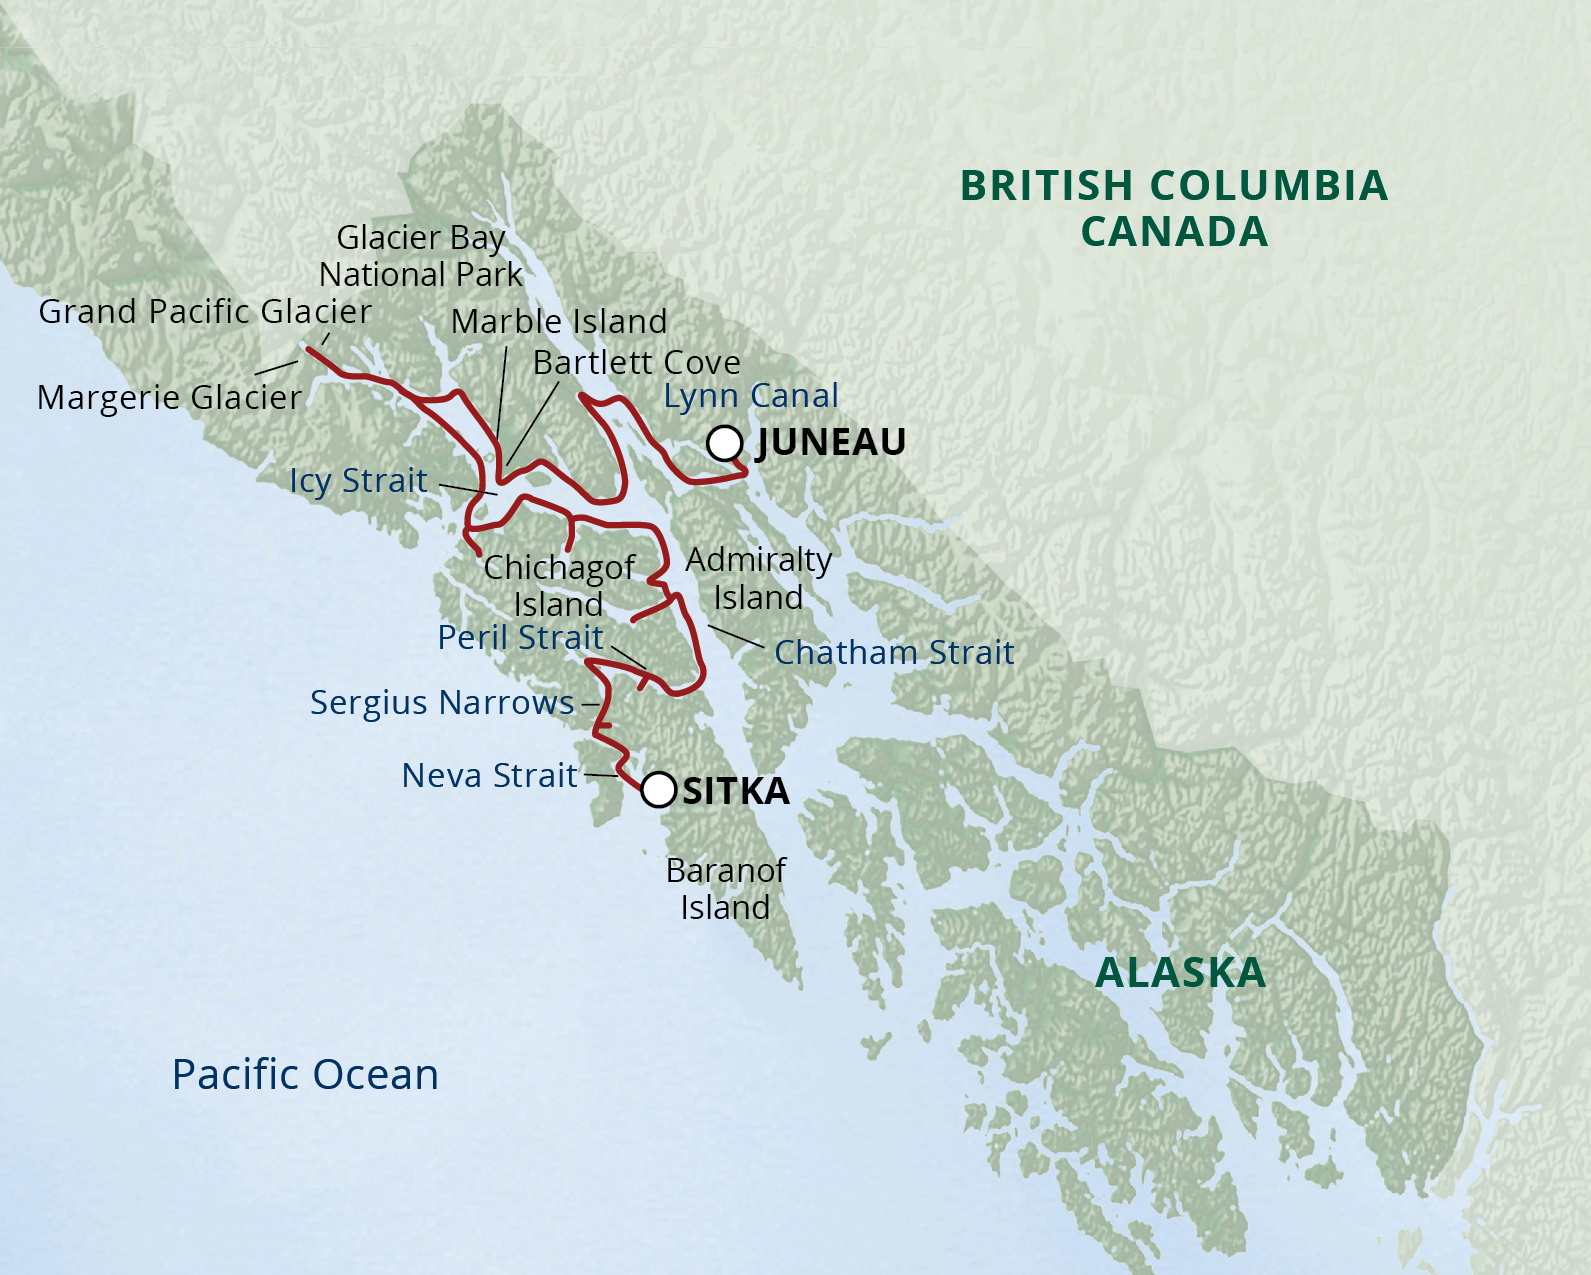 Northern Passages and Glacier Bay map